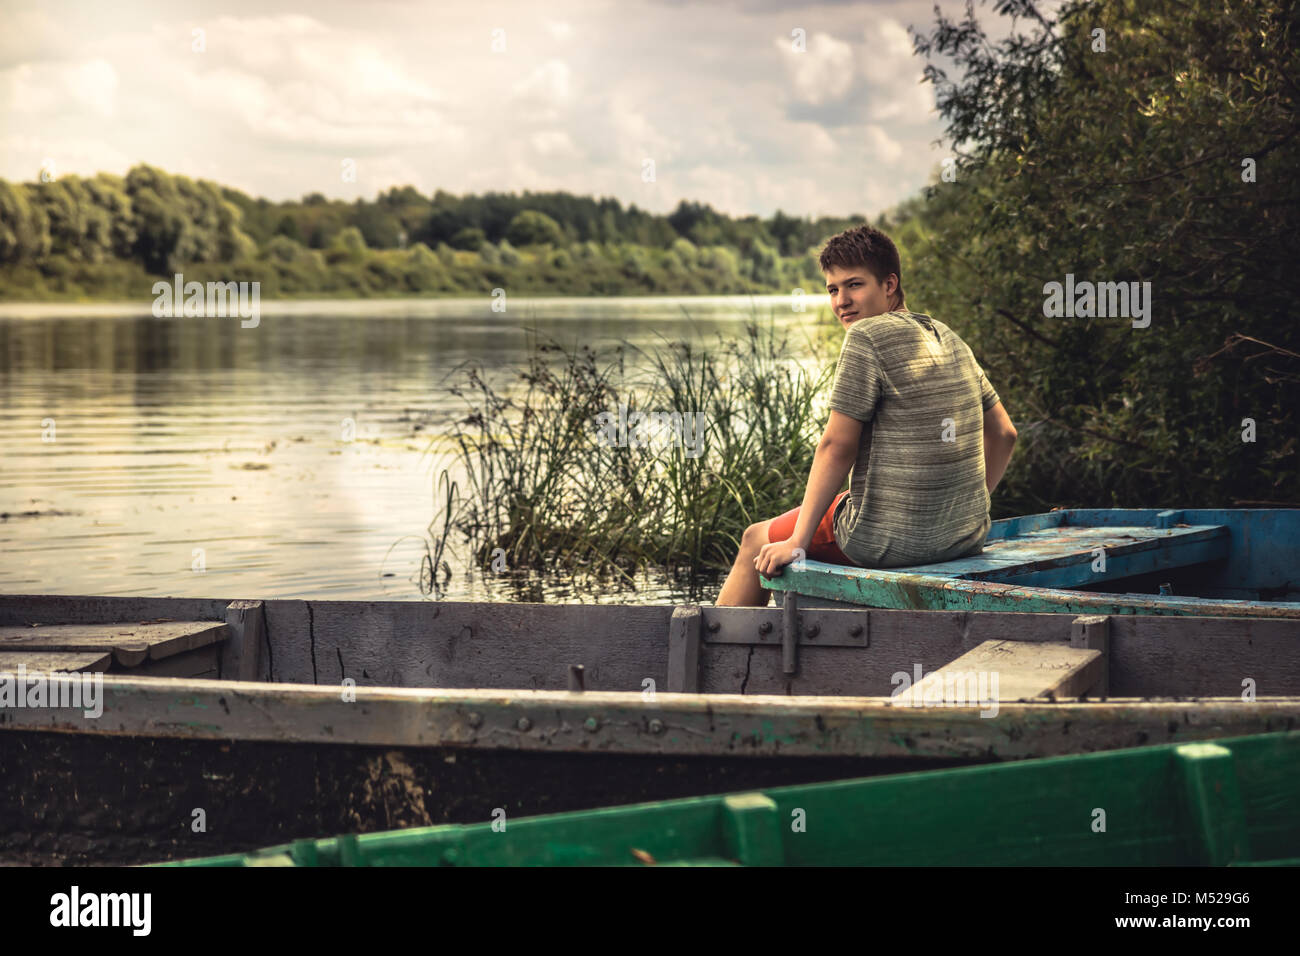 Teenager boy lonely contemplation countryside landscape on river bank during countryside summer holidays - Stock Image